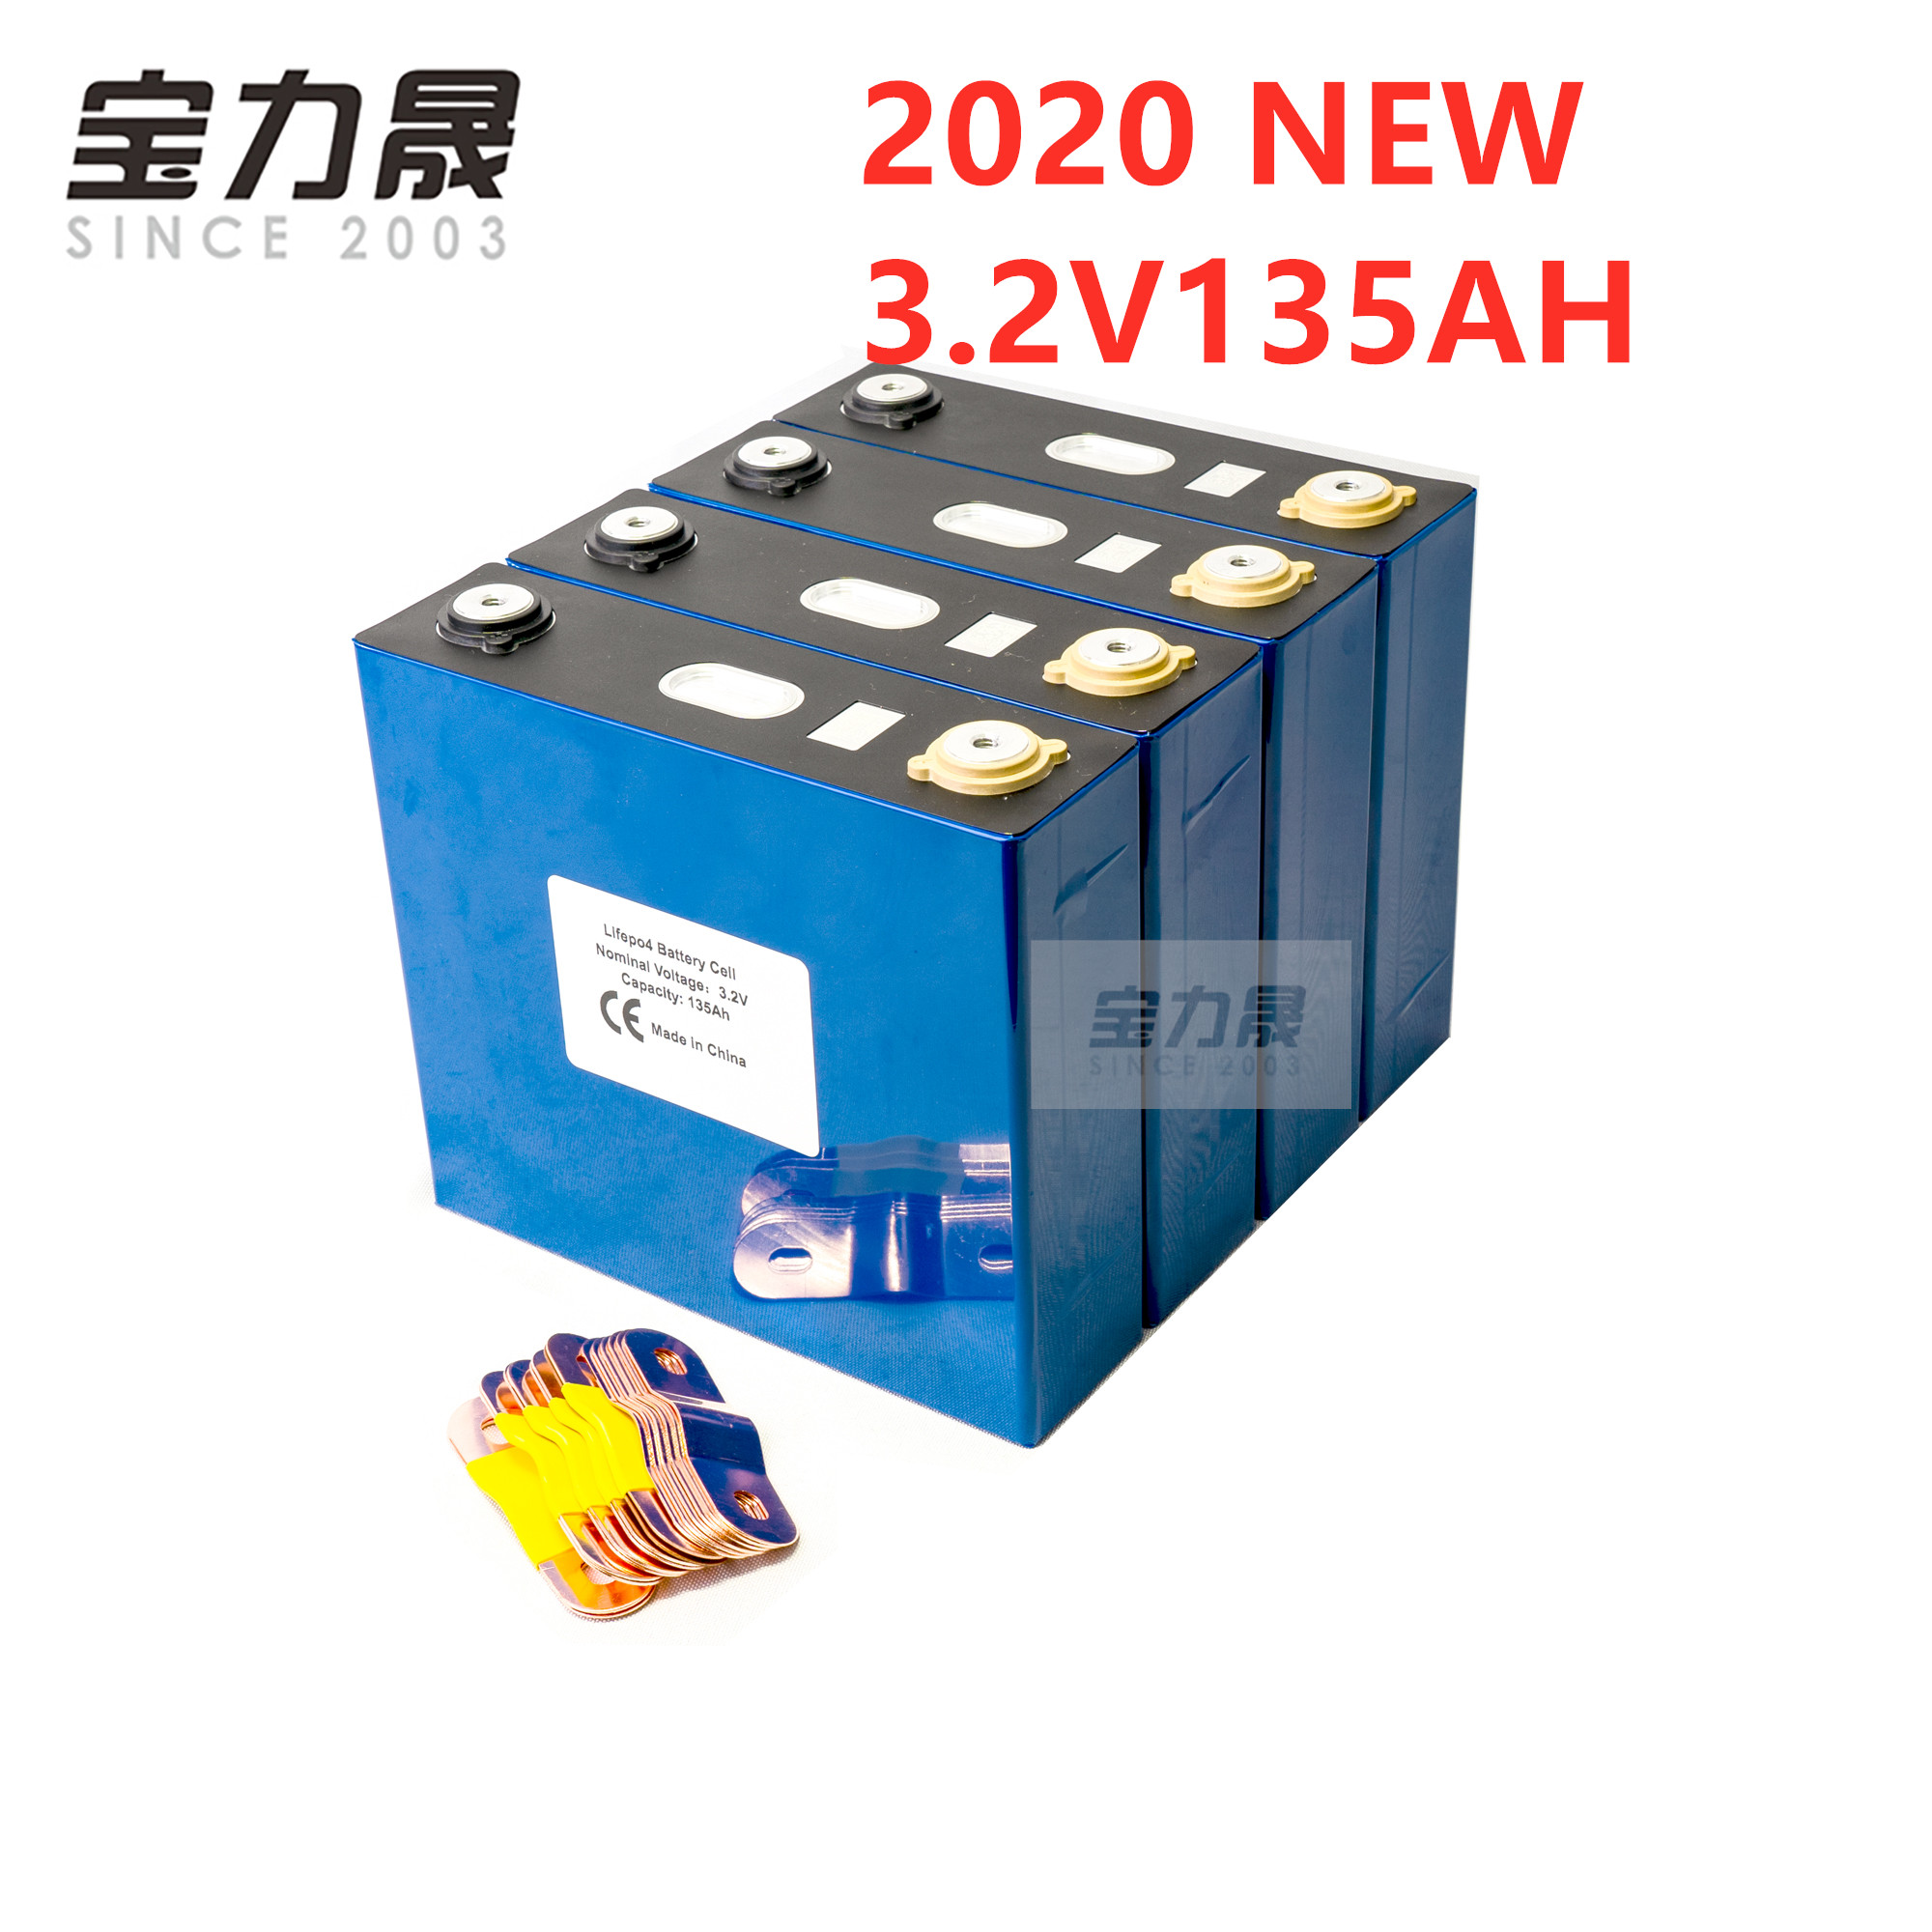 4PCS 3.2V 120AH 135AH lifepo4 Rechargeable <font><b>Battery</b></font> Lithium Iron Phosphate Cell solar 24V <font><b>12V</b></font> cells not <font><b>150Ah</b></font> EU US TAX FREE image